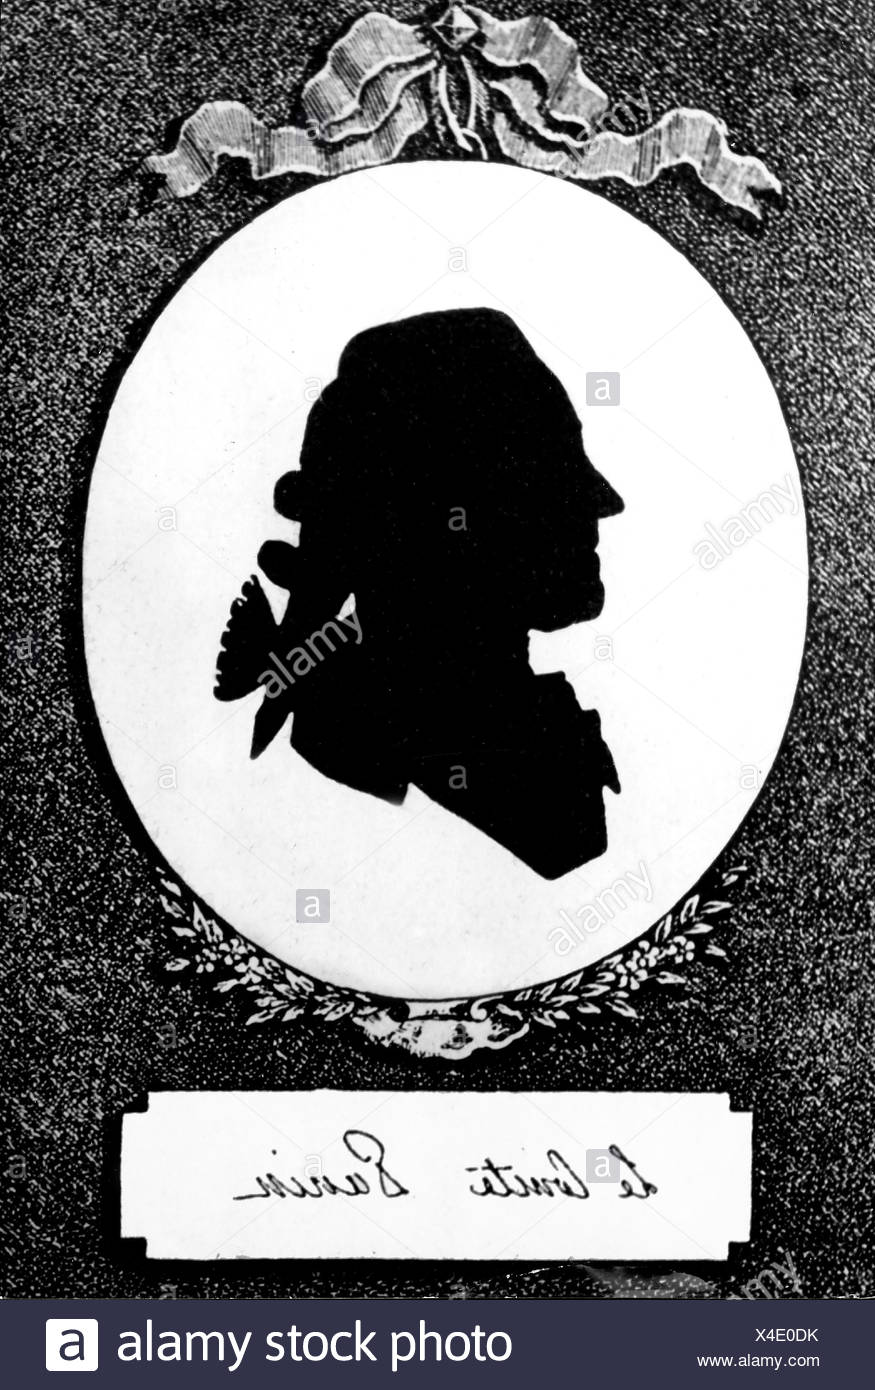 Panin, Nikita Ivanovich, 26.9.1718 - 20.3.1783, Russian politician, Foreign Minister 1763 - 1783, portrait, silhouette, 18th century, , Additional-Rights-Clearances-NA - Stock Image